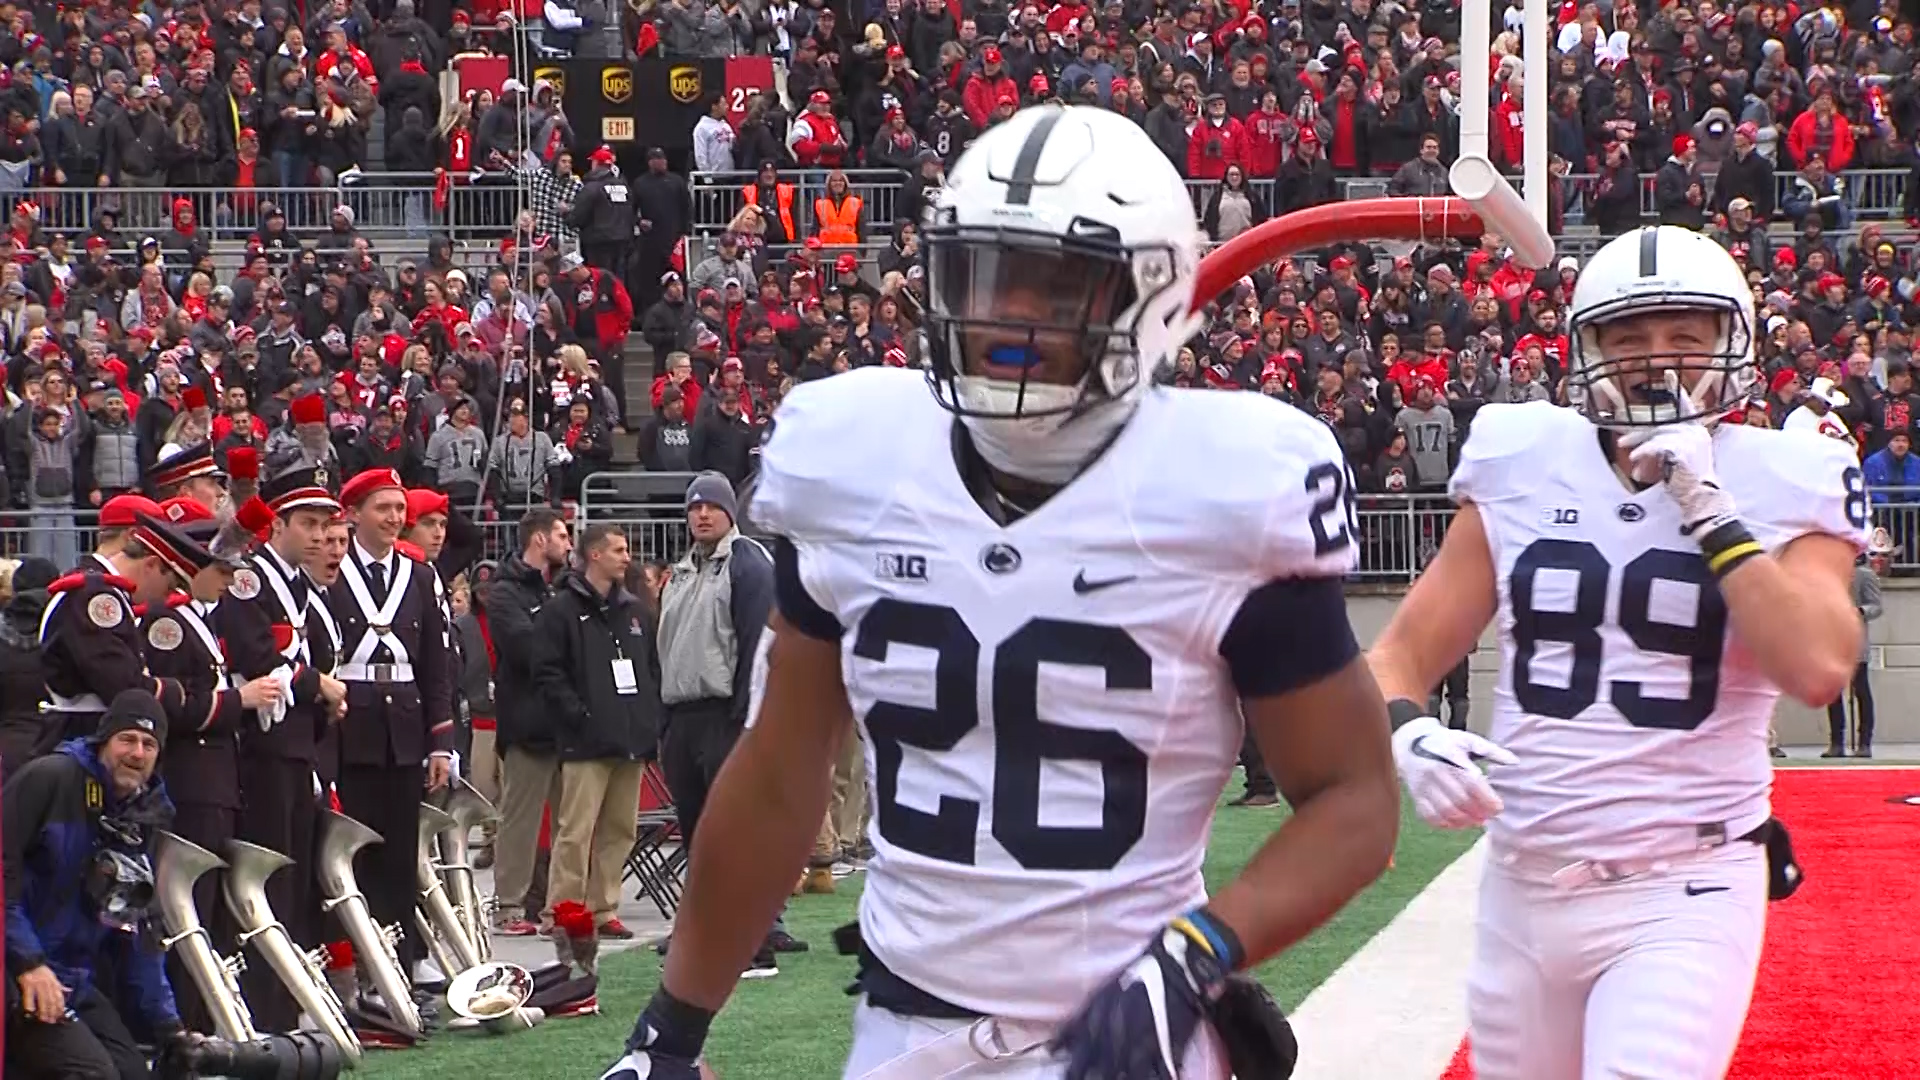 brand new d4544 69d57 Saquon Barkley will host his inaugural football camp at Penn ...